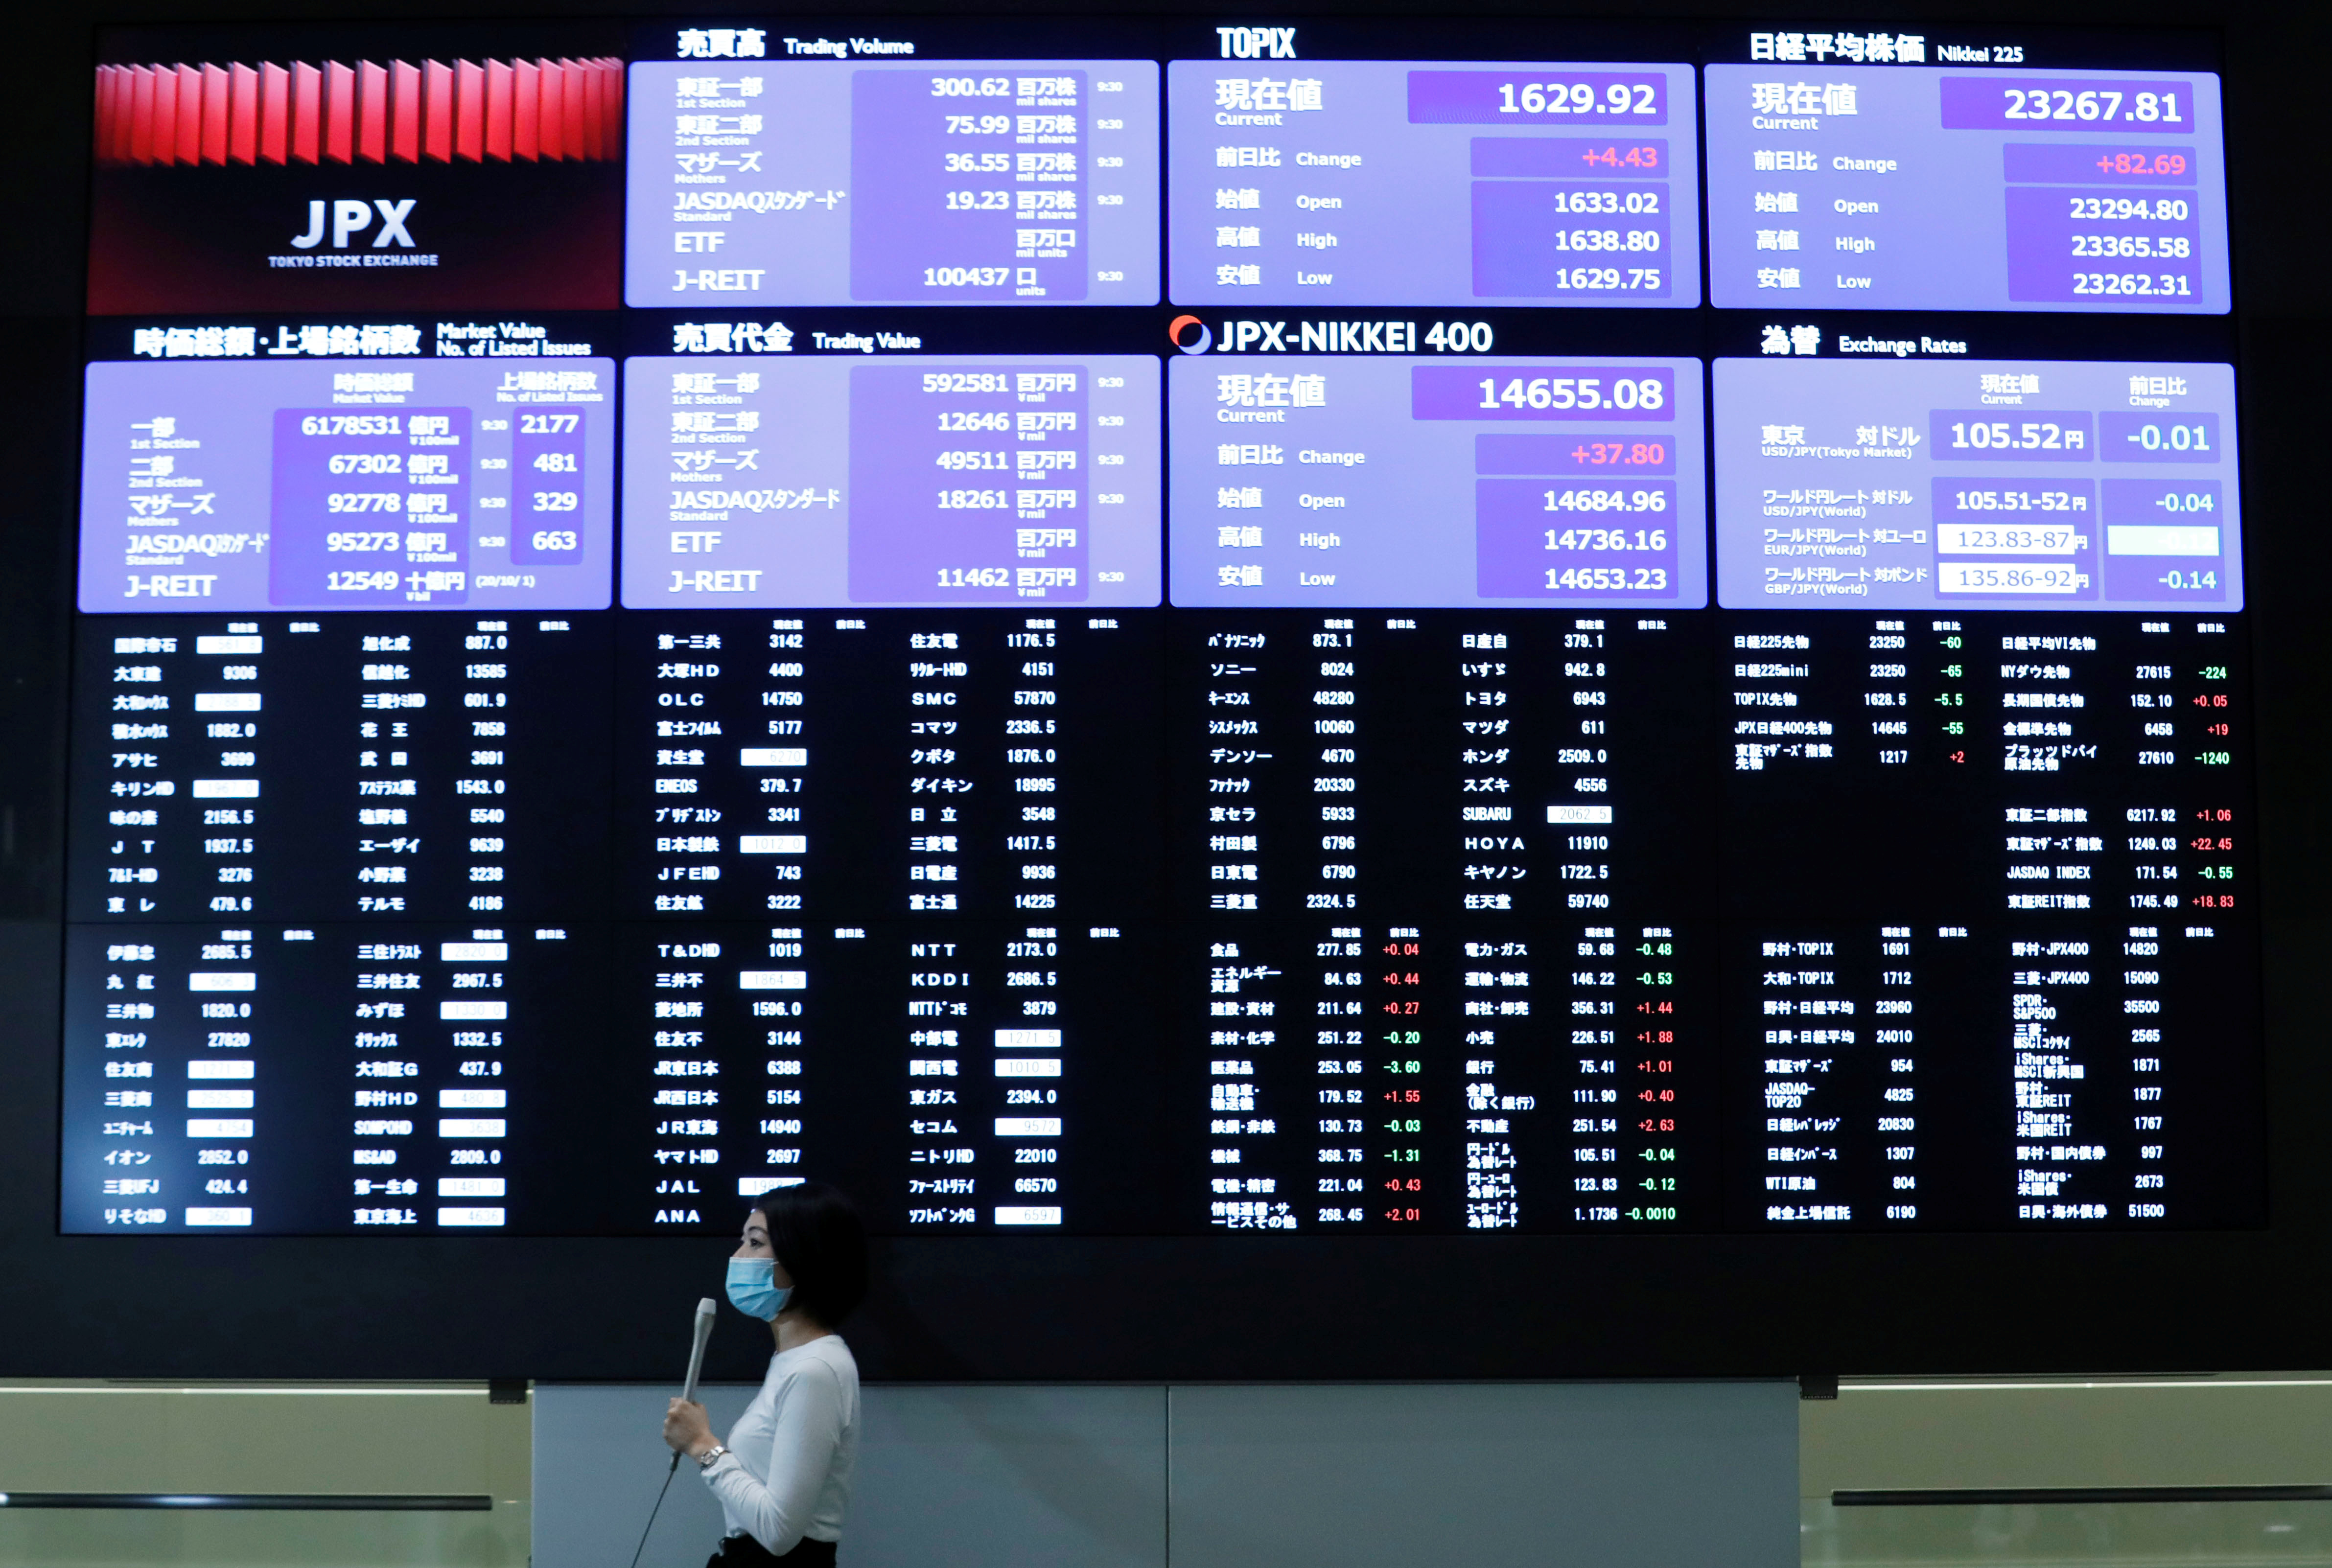 A TV reporter stands in front of a large screen showing stock prices at the Tokyo Stock Exchange after market opens in Tokyo, Japan October 2, 2020. REUTERS/Kim Kyung-Hoon